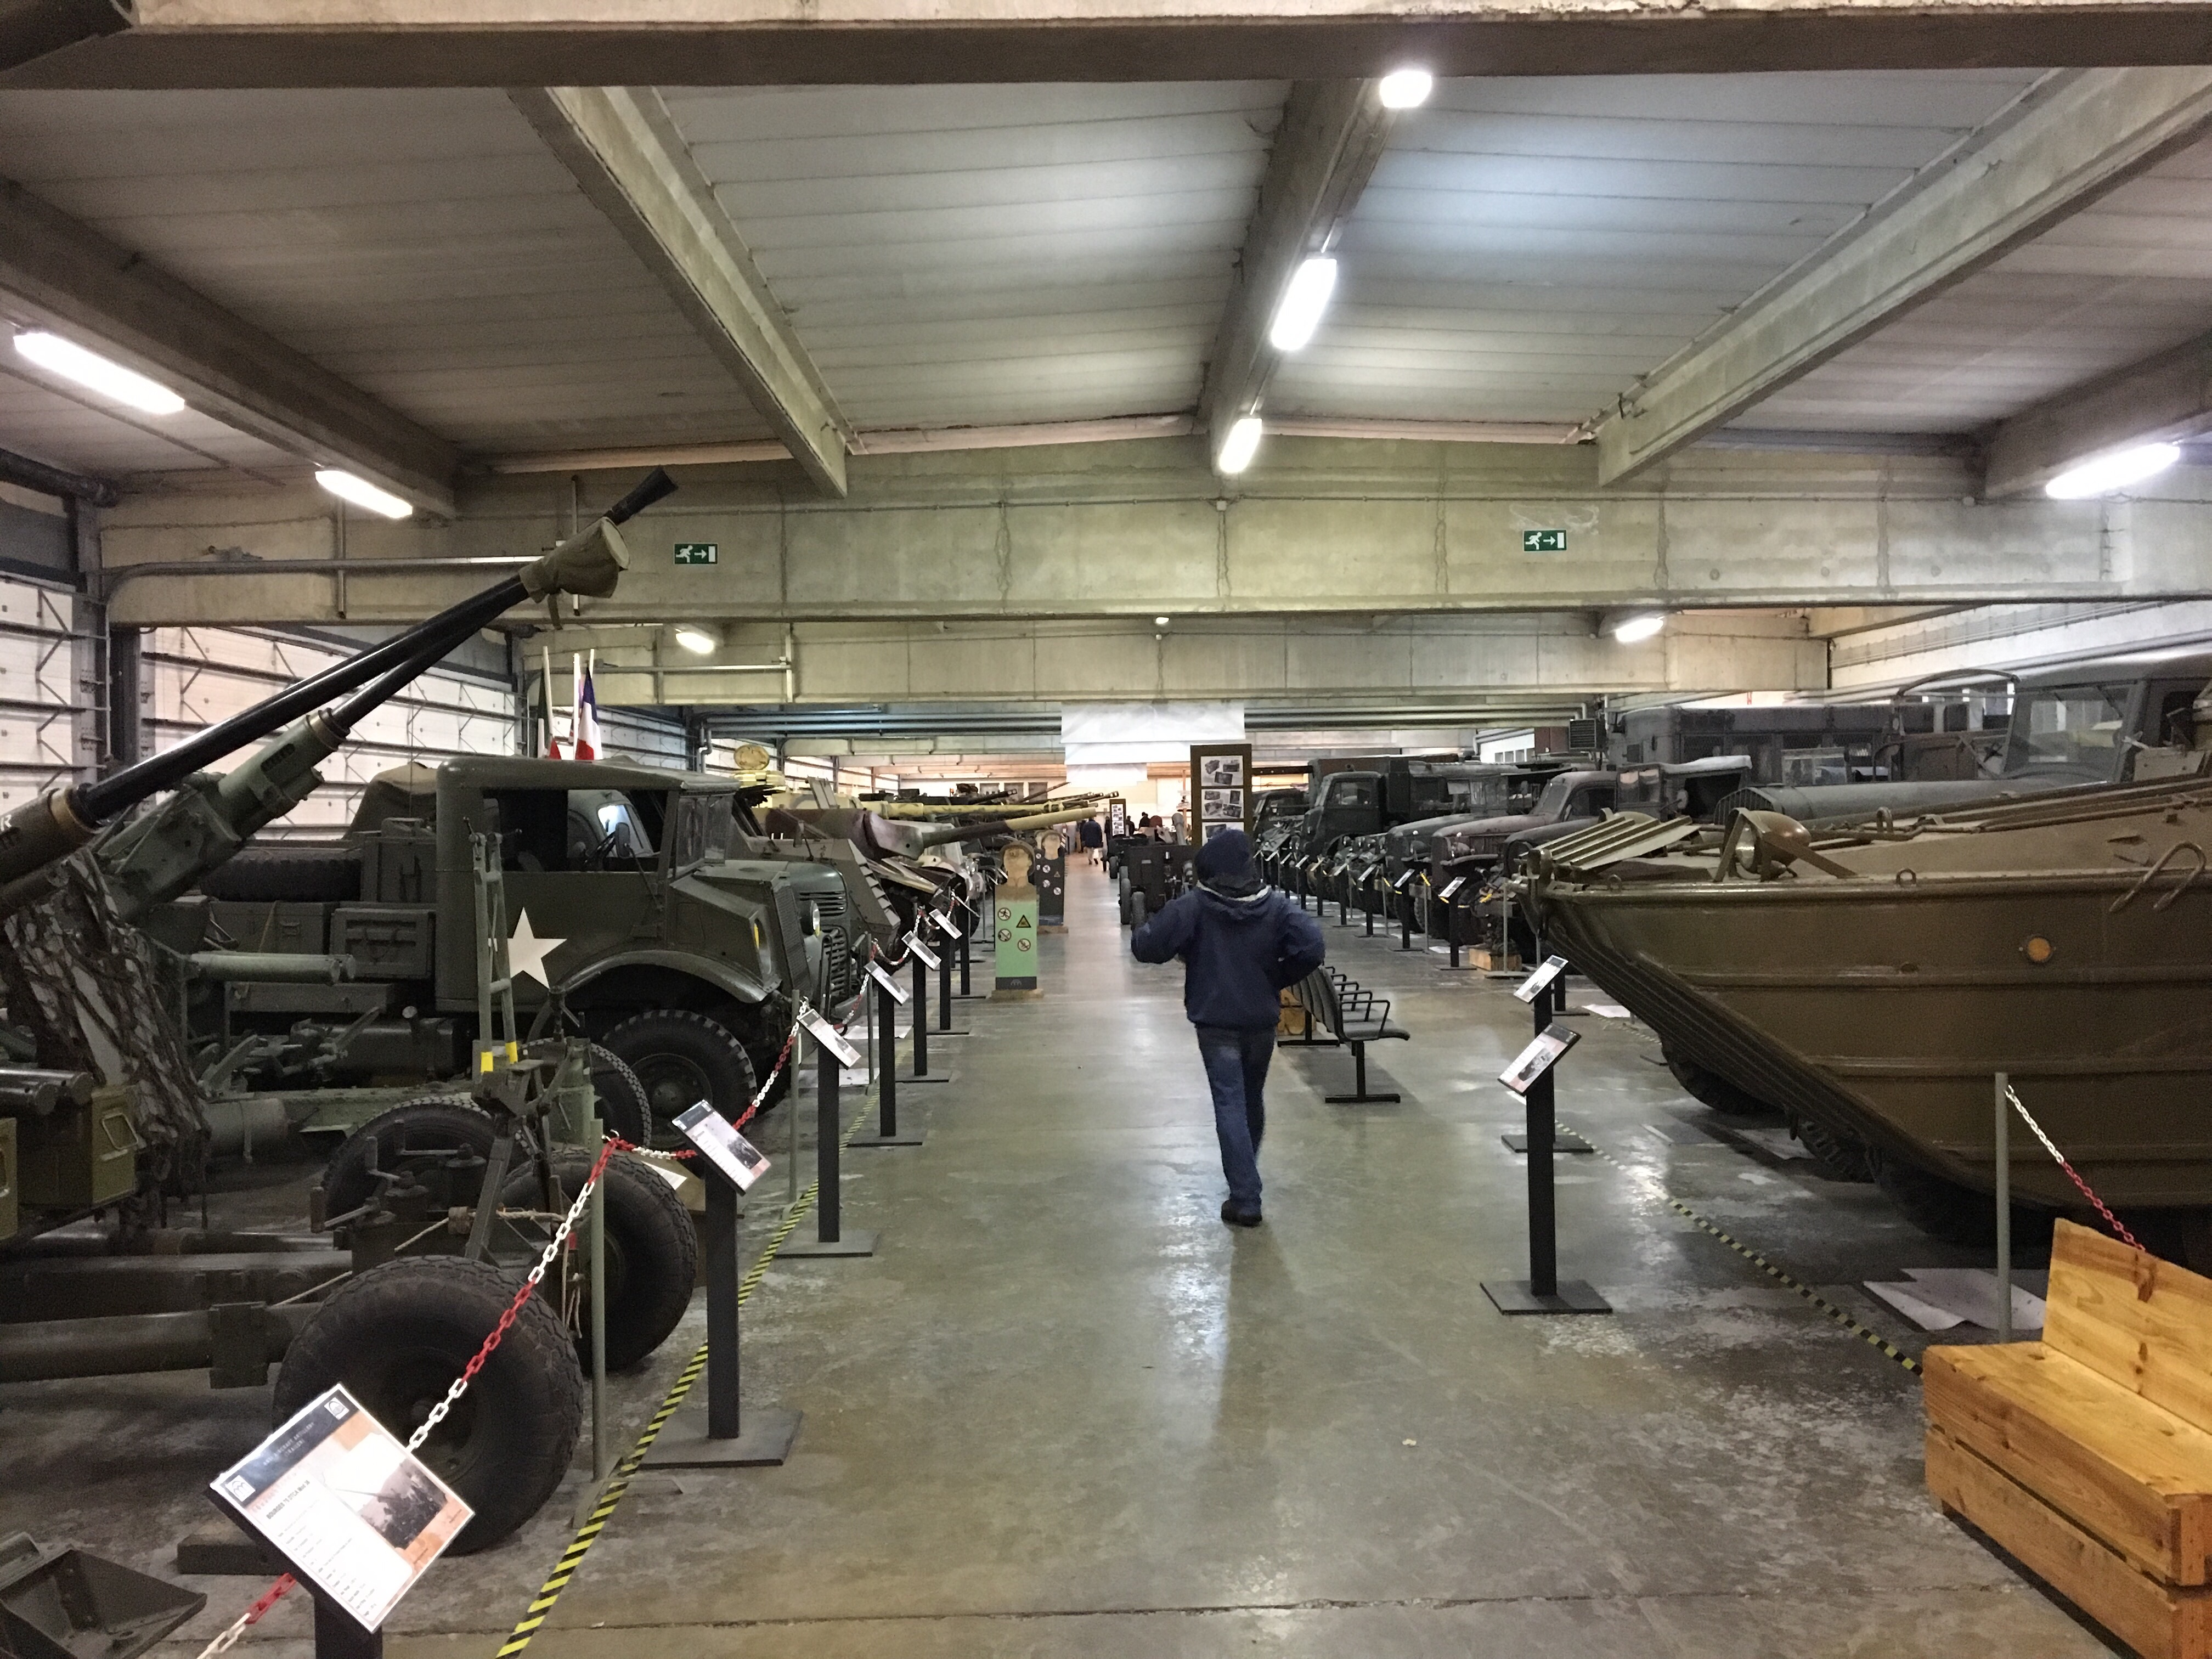 All the tanks, and other stuff too.